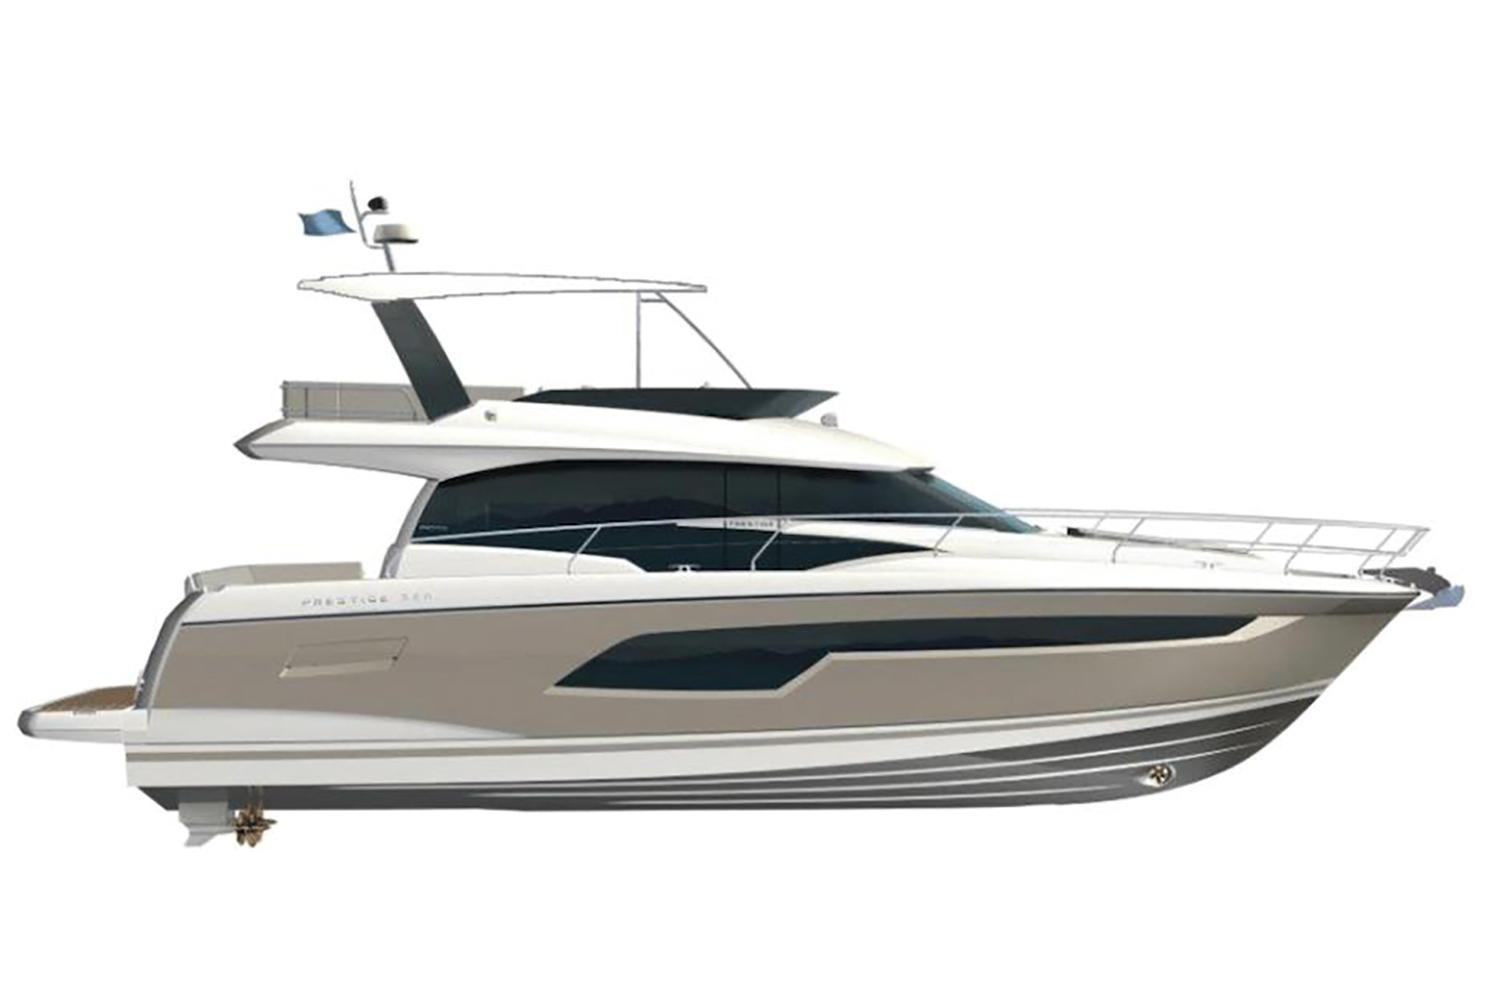 2021 Prestige 520 Fly #75563 inventory image at Sun Country Coastal in San Diego